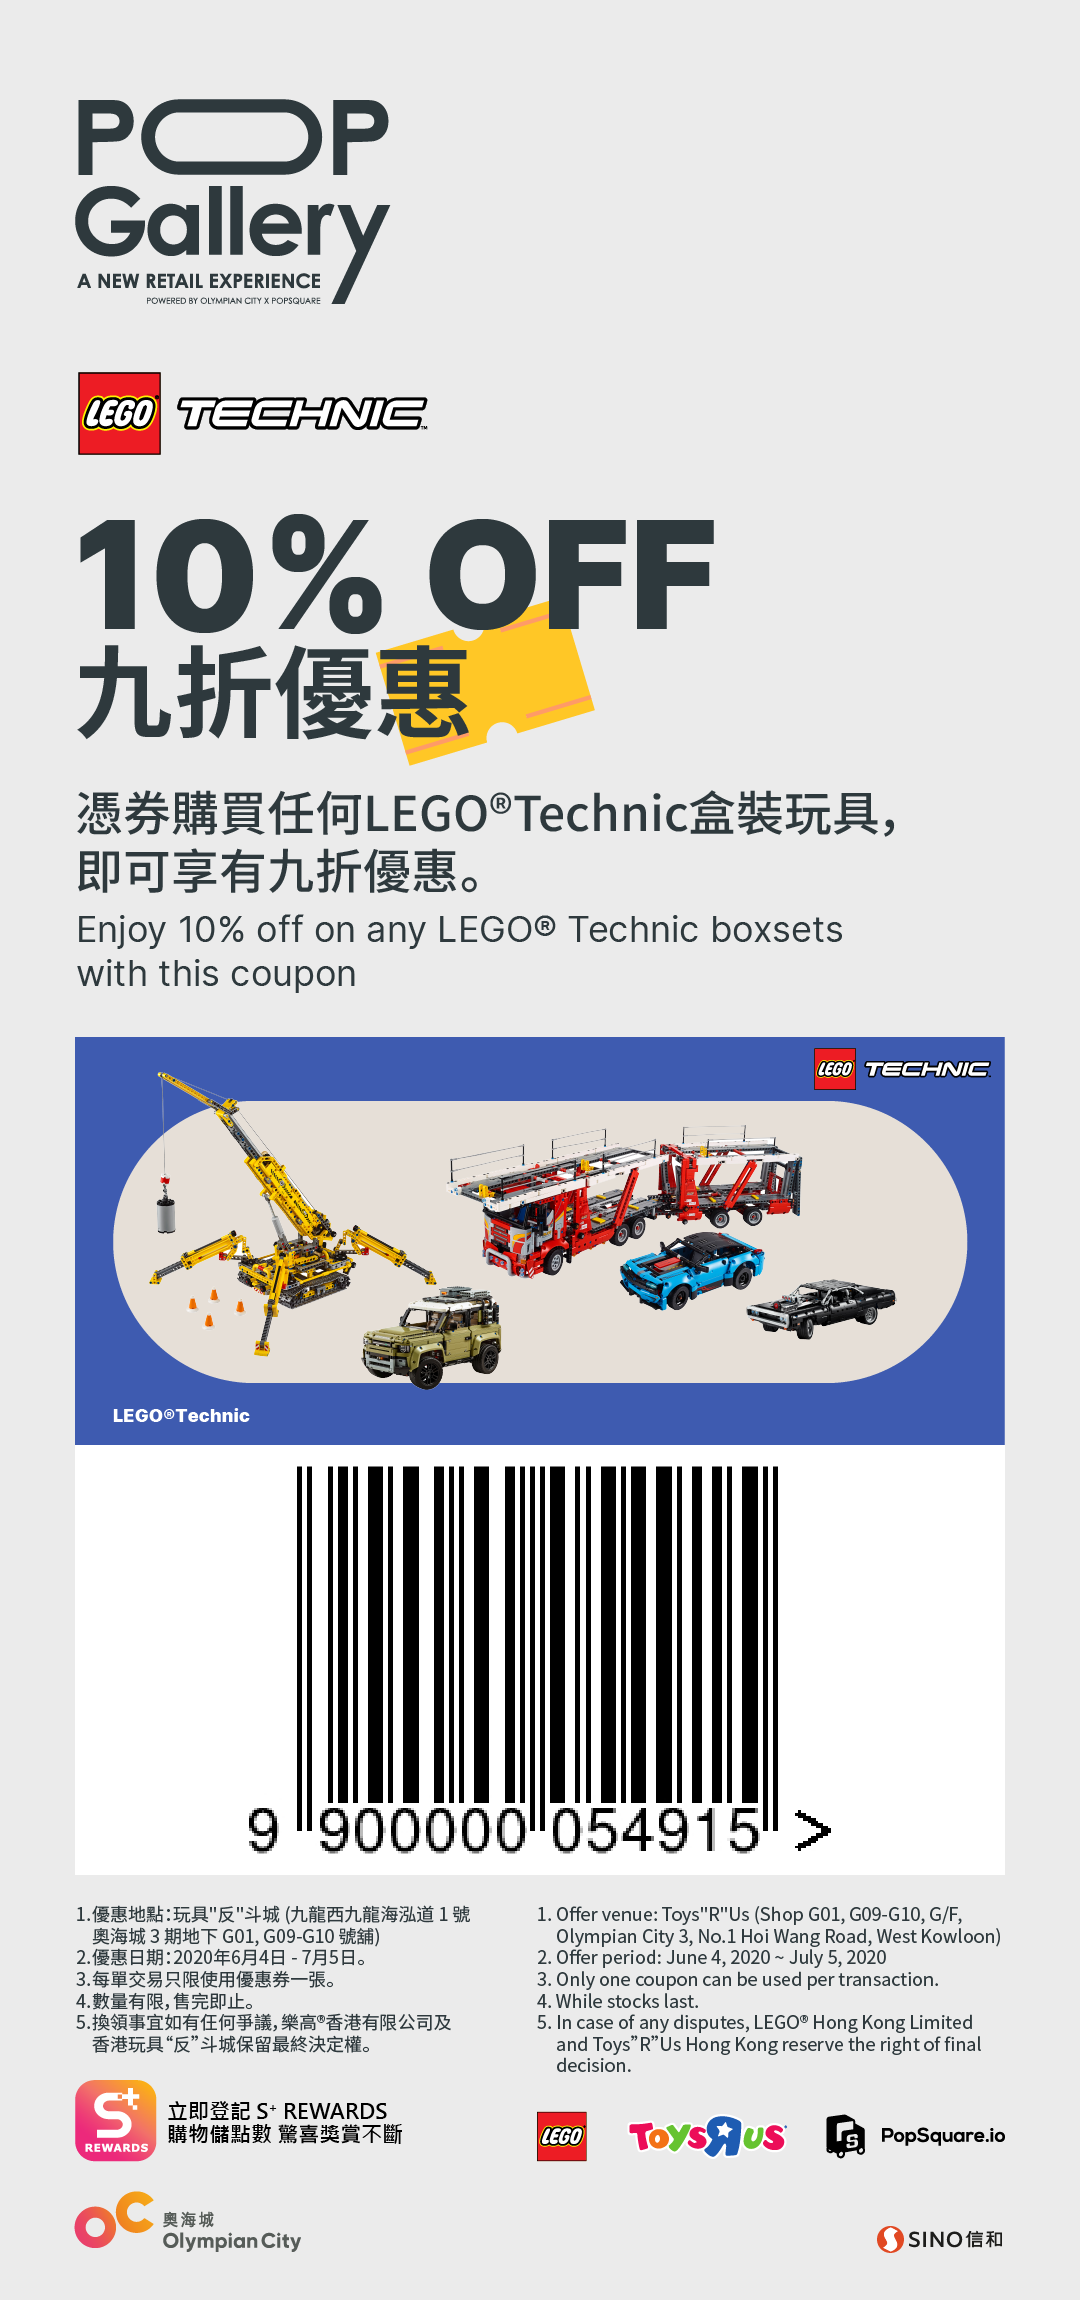 Lego Technic 10% OFF